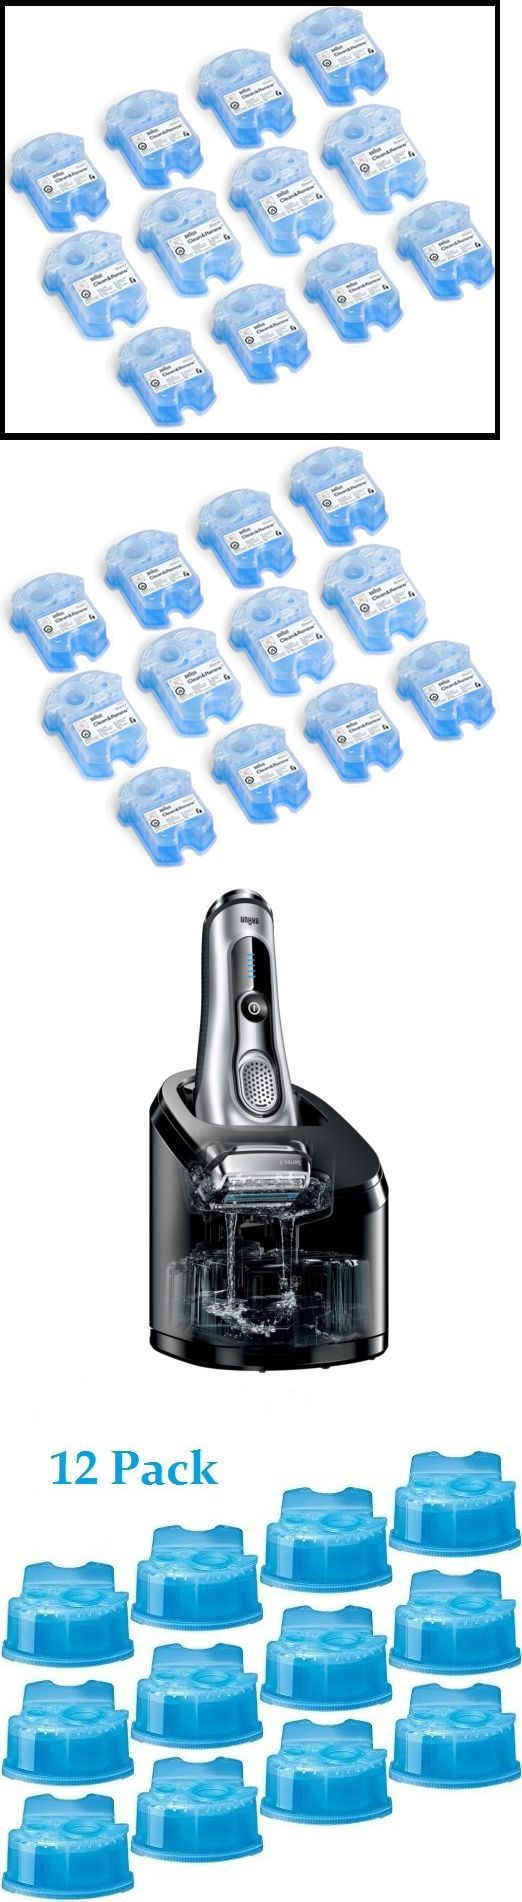 Mens Shavers: Braun Clean And Renew System Cartridges Refills Ccr3 Series 3 5 7 9 Shaver, All Pk -> BUY IT NOW ONLY: $54.99 on eBay!